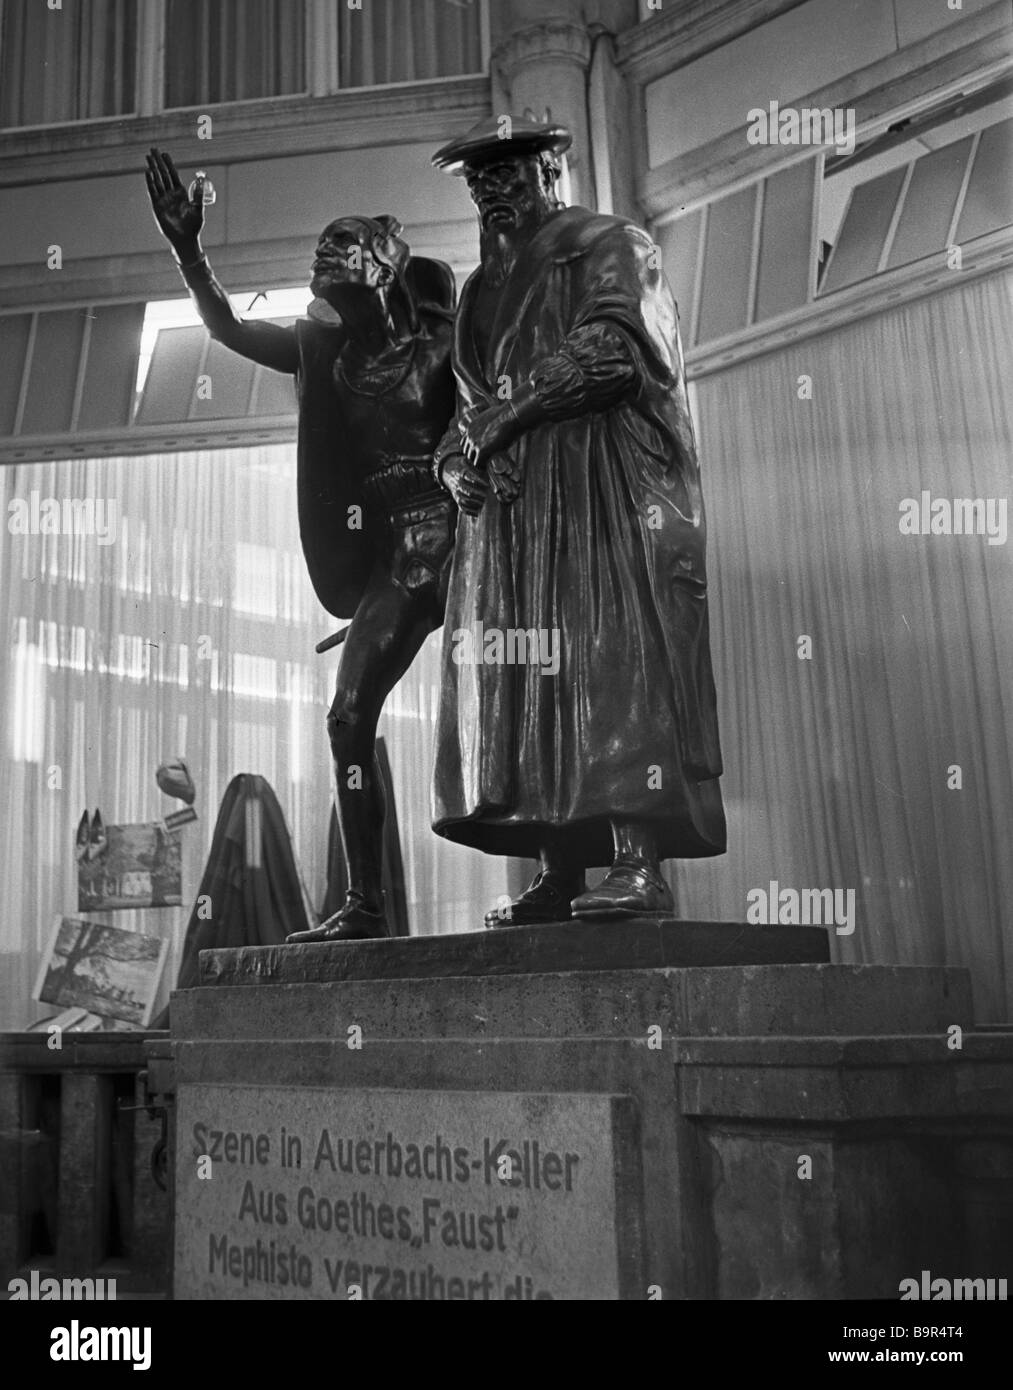 Sculpture Faust and Mephistopheles at the entrance to Auerbach s Keller - Stock Image